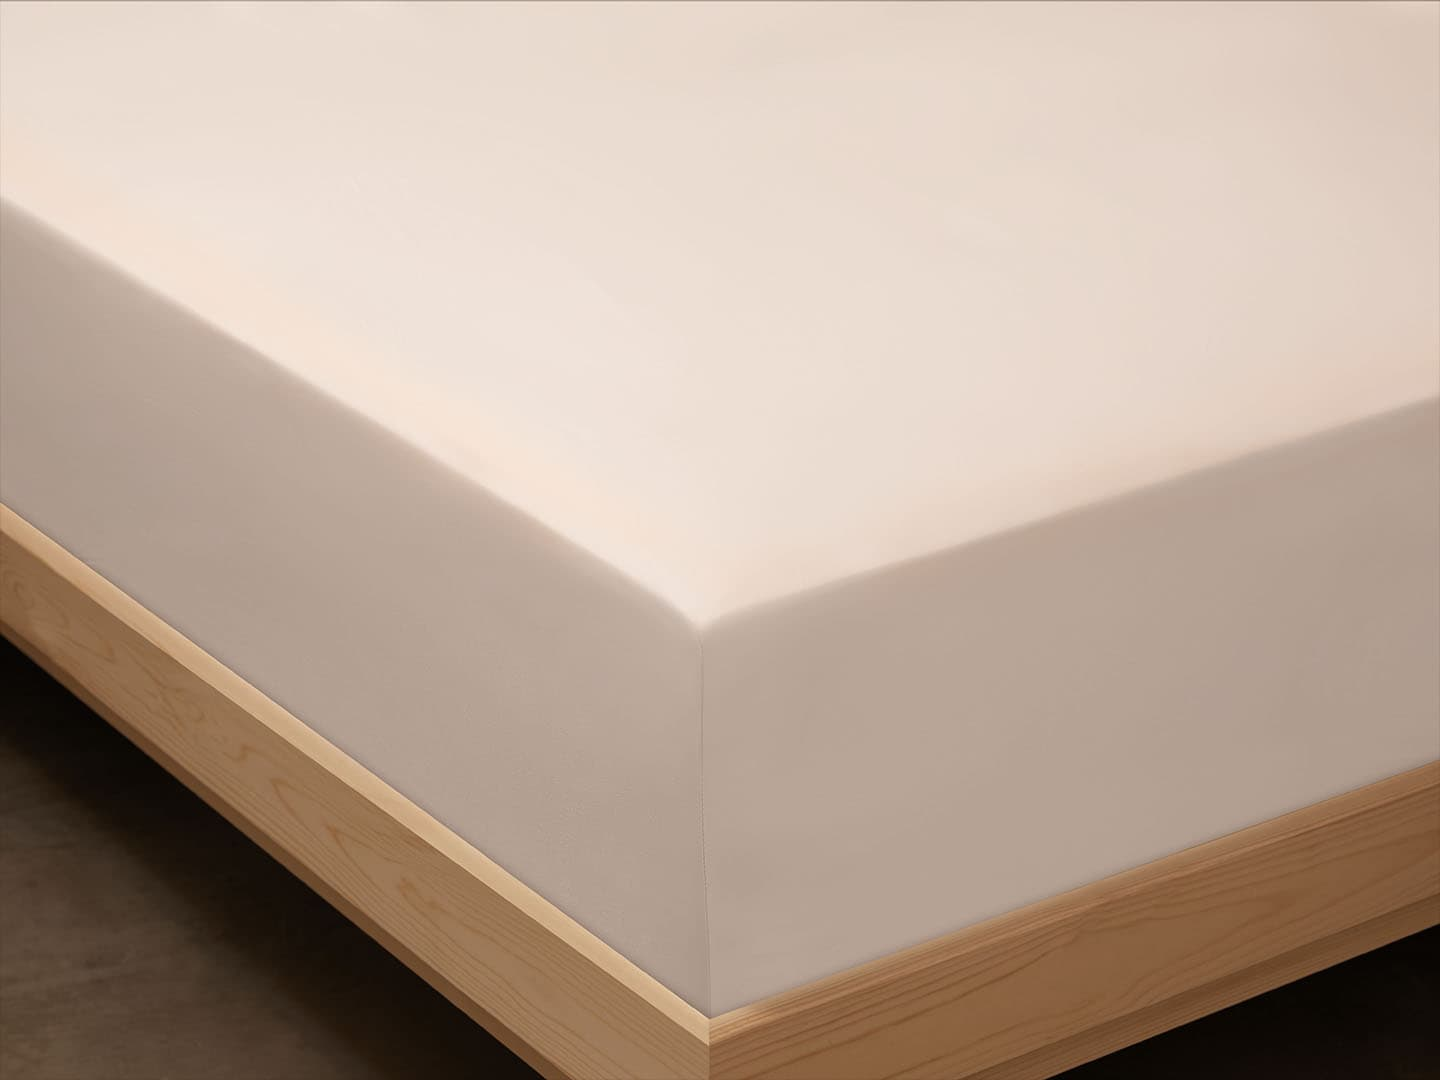 Fitted Sheet Lind - Seashell Beige in the group Bedding / Flat Sheets at A L V A (1137)